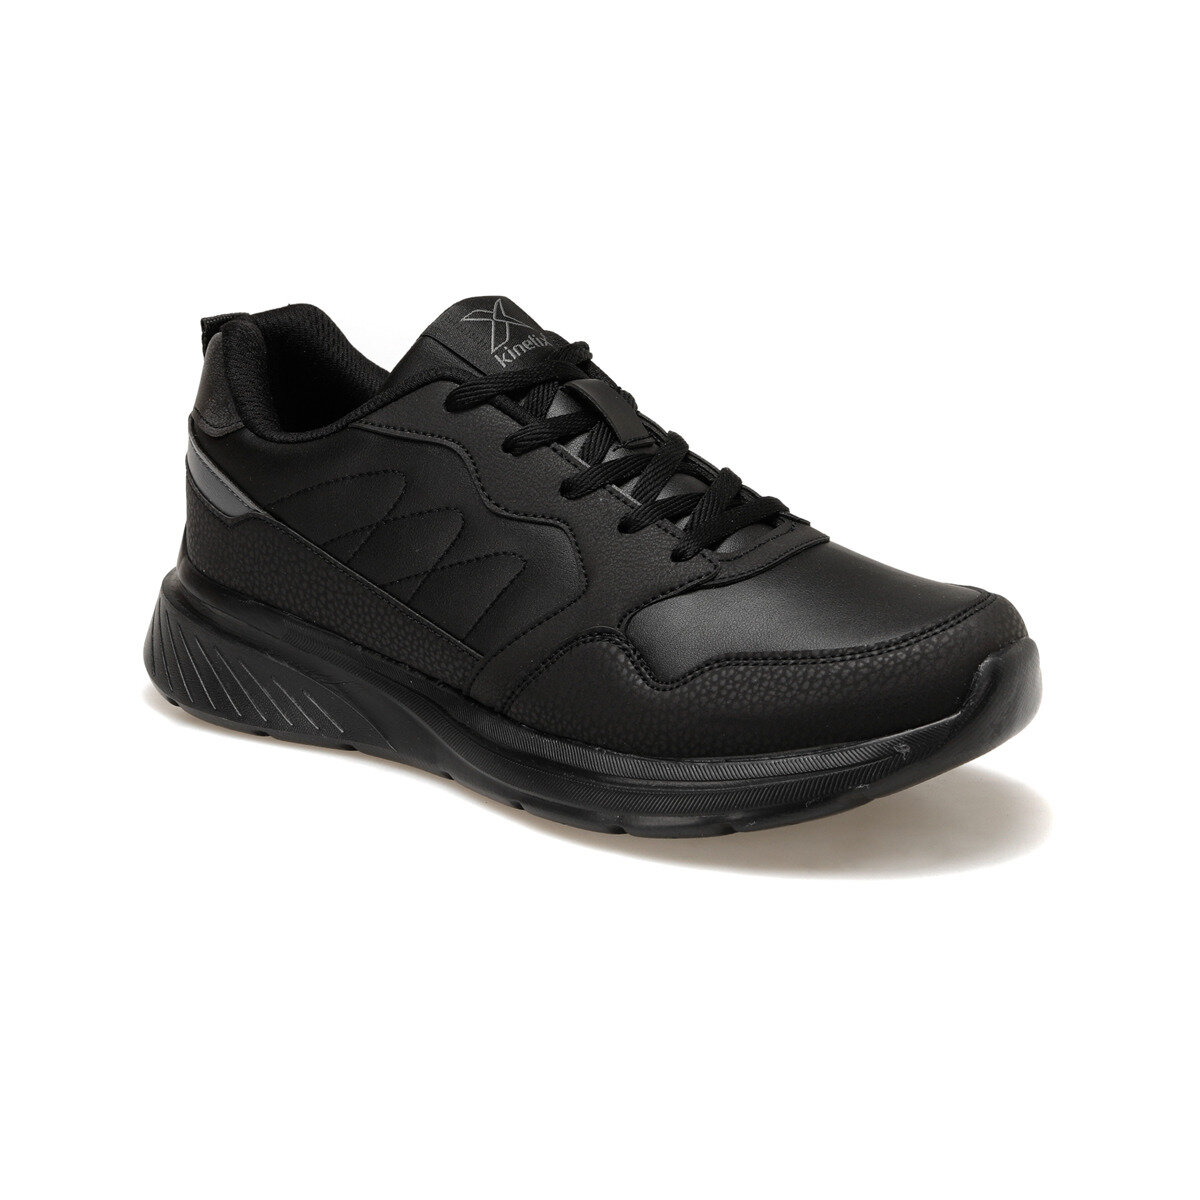 FLO PACO 9PR Black Men 'S Comfort Shoes KINETIX